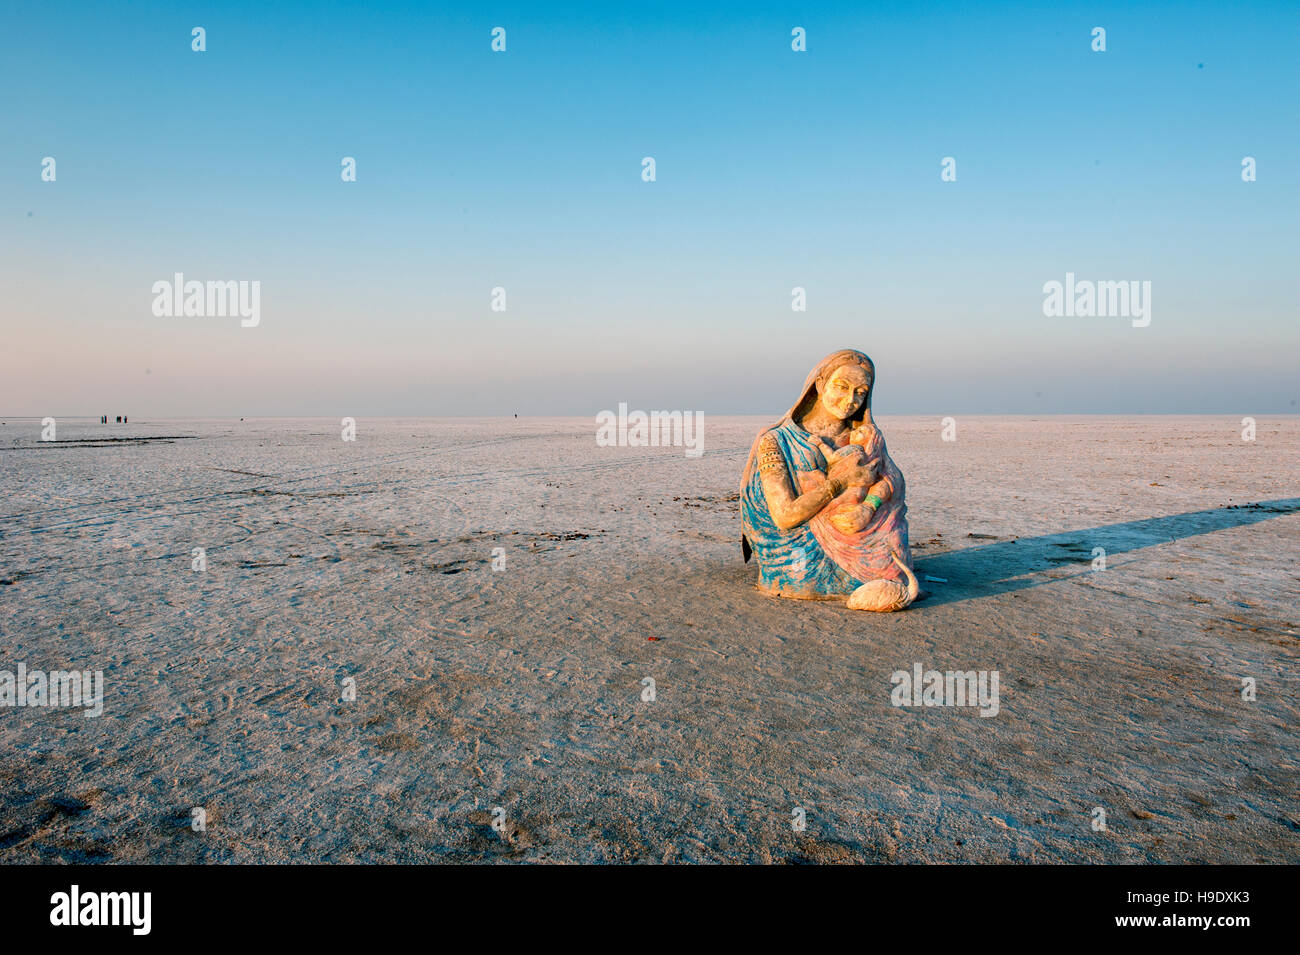 A religious statue left in the Great Rann of Kutch, a seasonal salt marsh located in the Thar Desert of Gujarat, - Stock Image